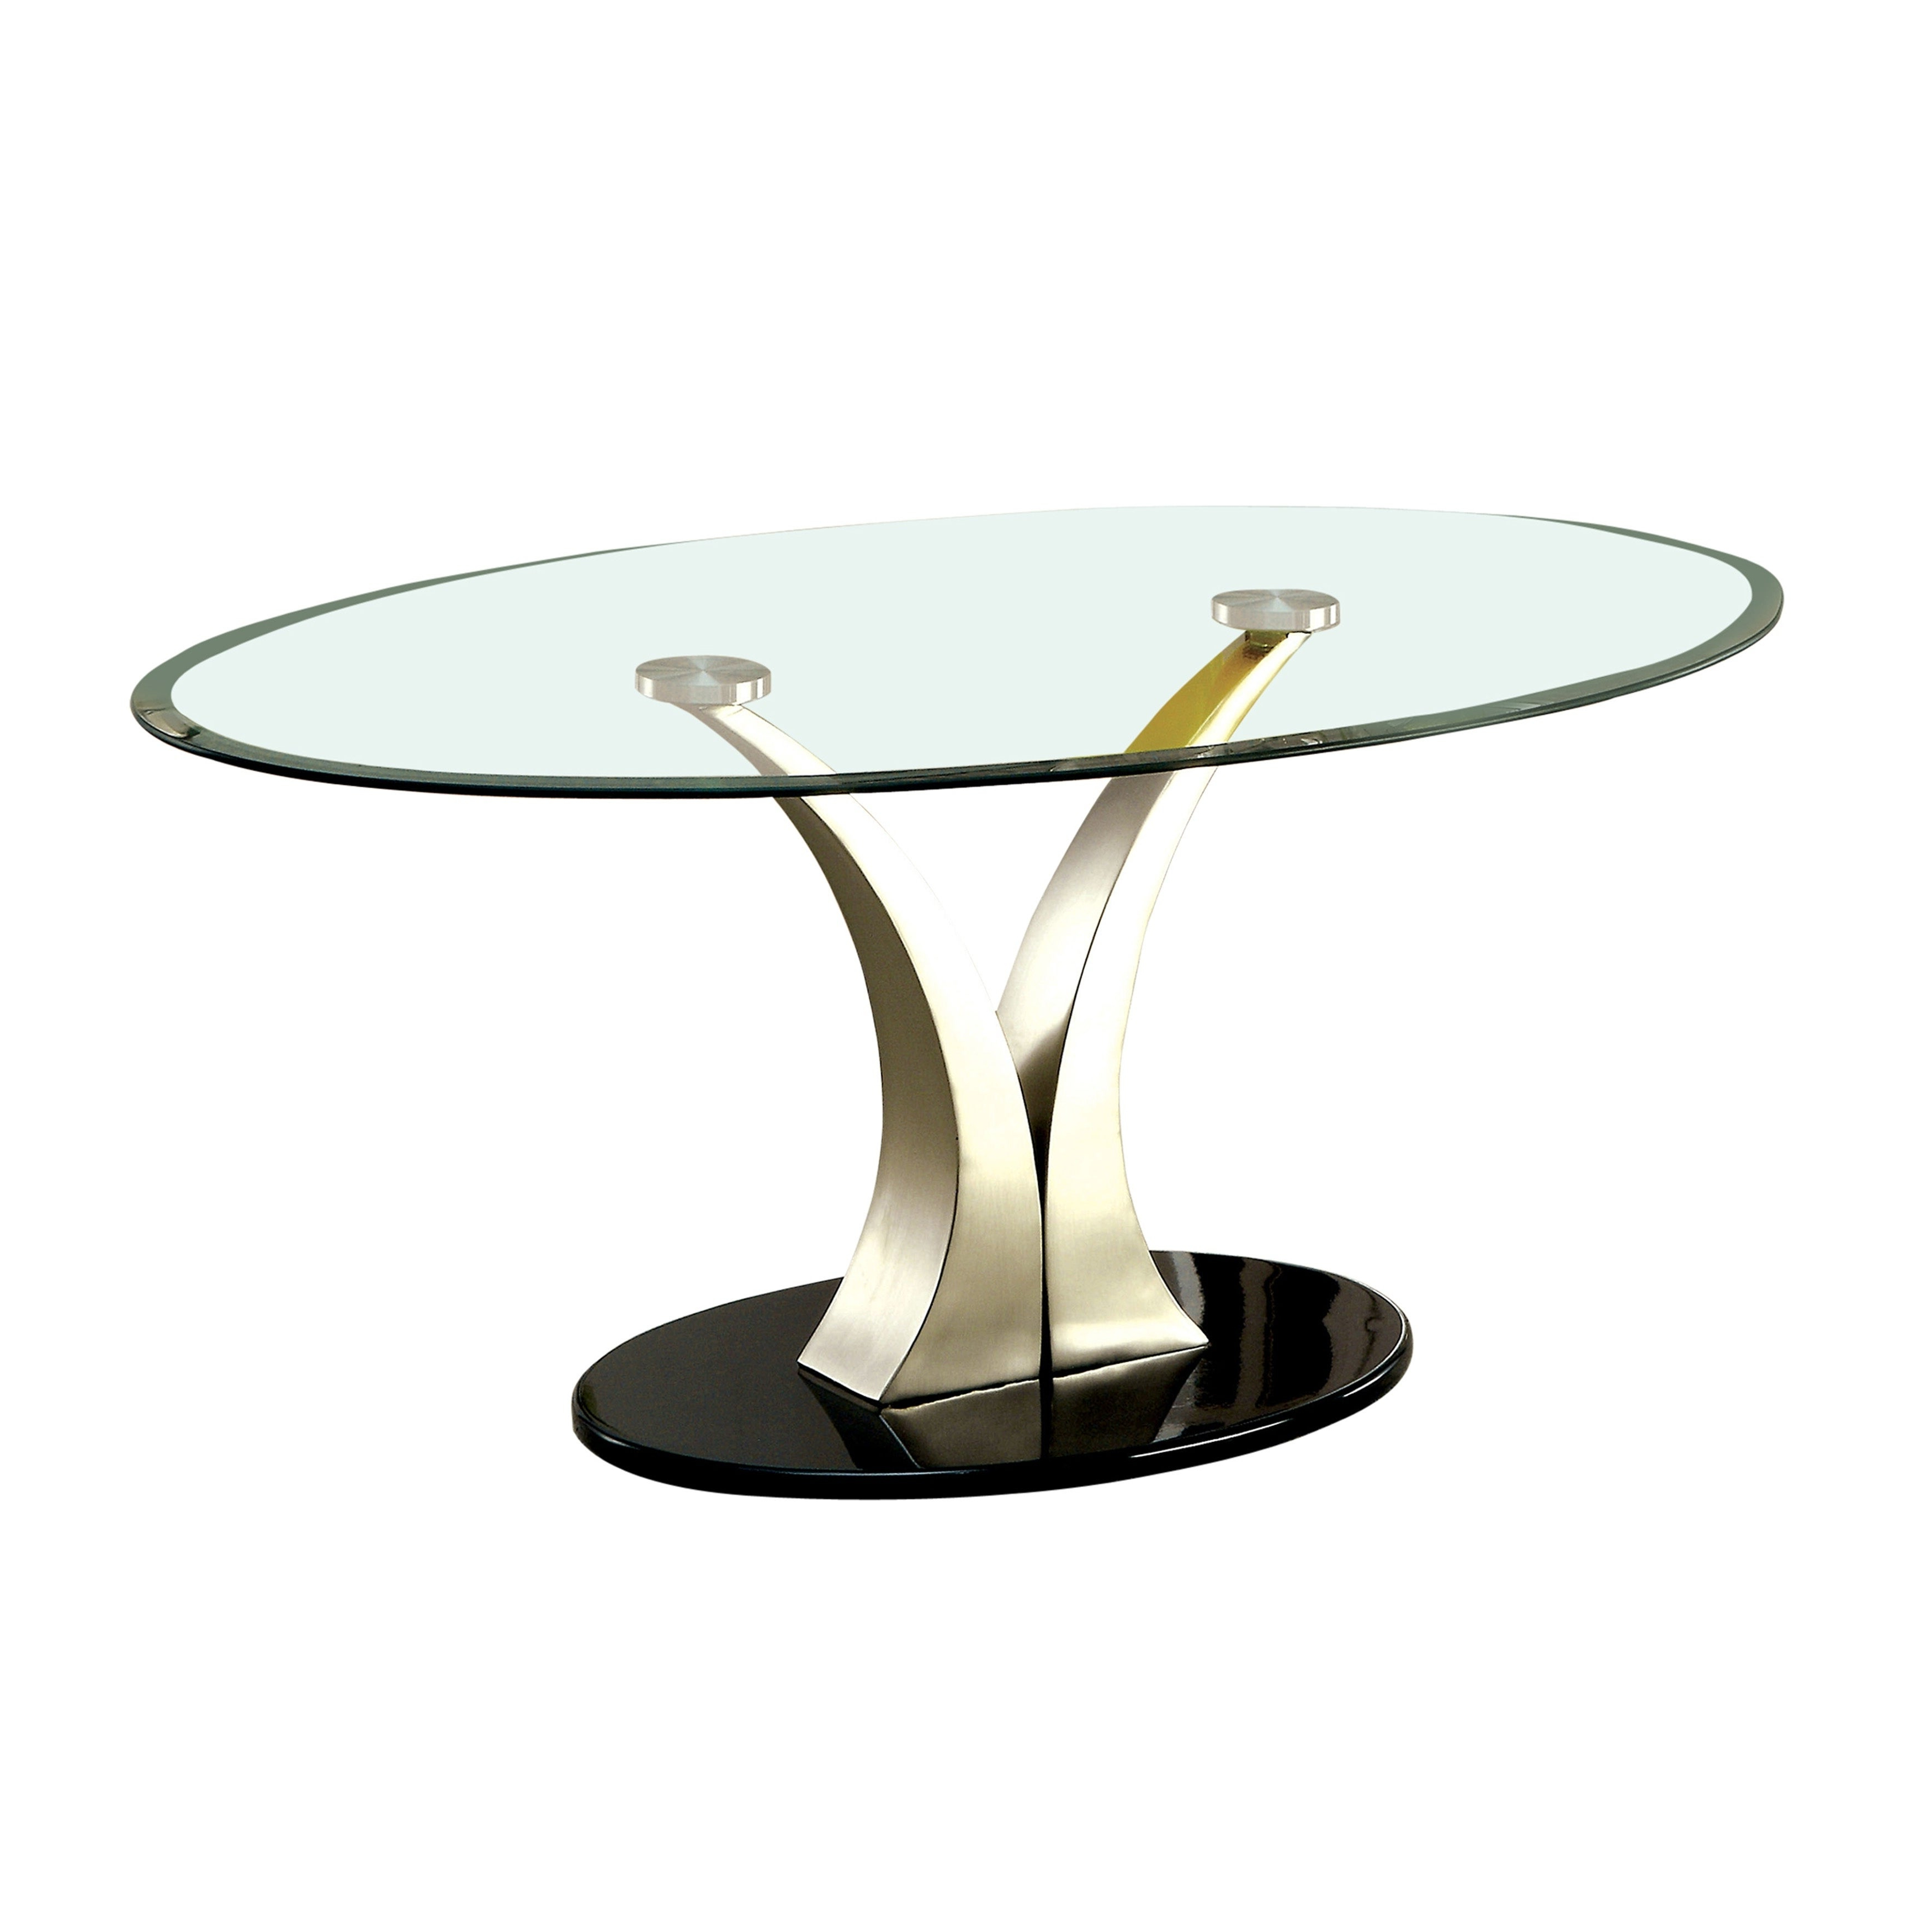 Velma Modern Satin Plated Coffee Tablefoa Within Most Recently Released Velma Modern Satin Plated Coffee Tables (View 2 of 20)